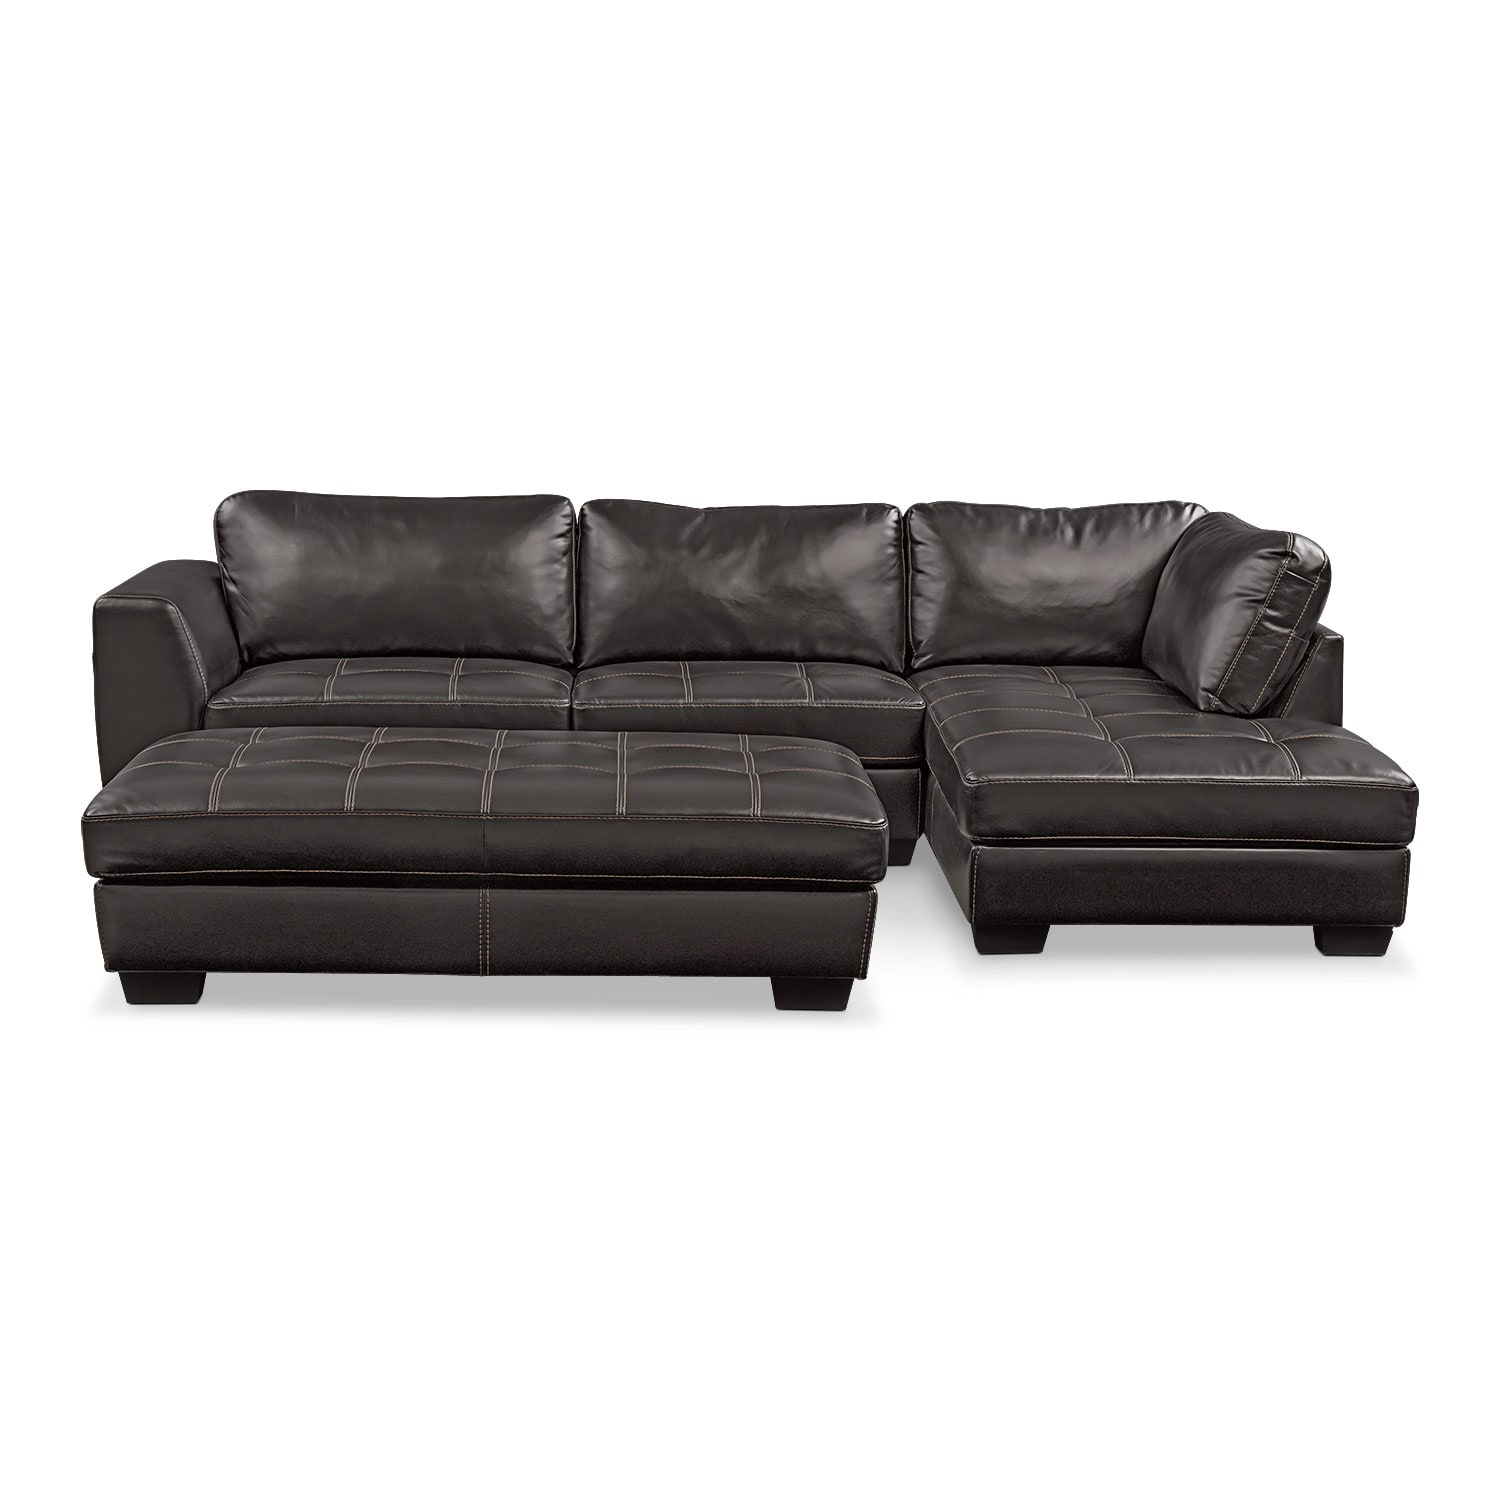 Santana 2 Piece Sectional With Chaise And Cocktail Ottoman Set